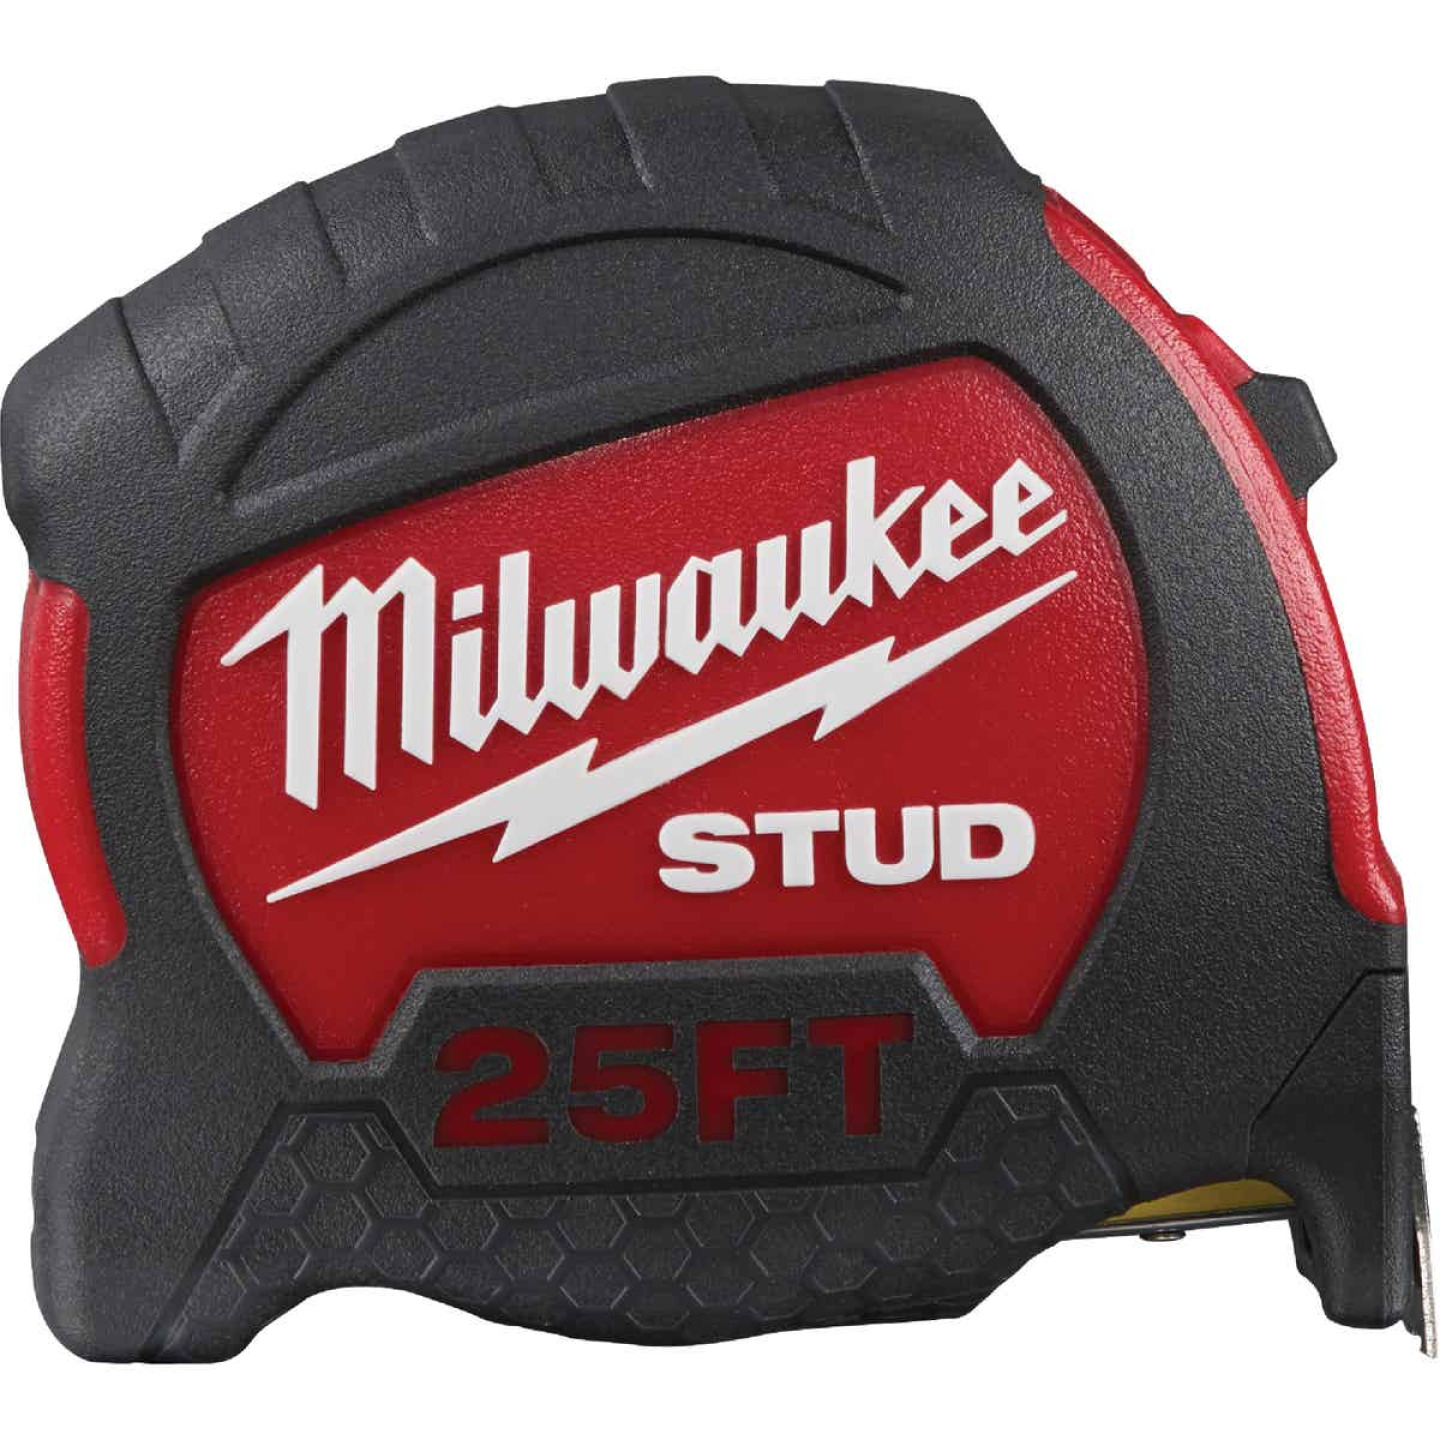 Milwaukee STUD 25 Ft. Tape Measure Image 1